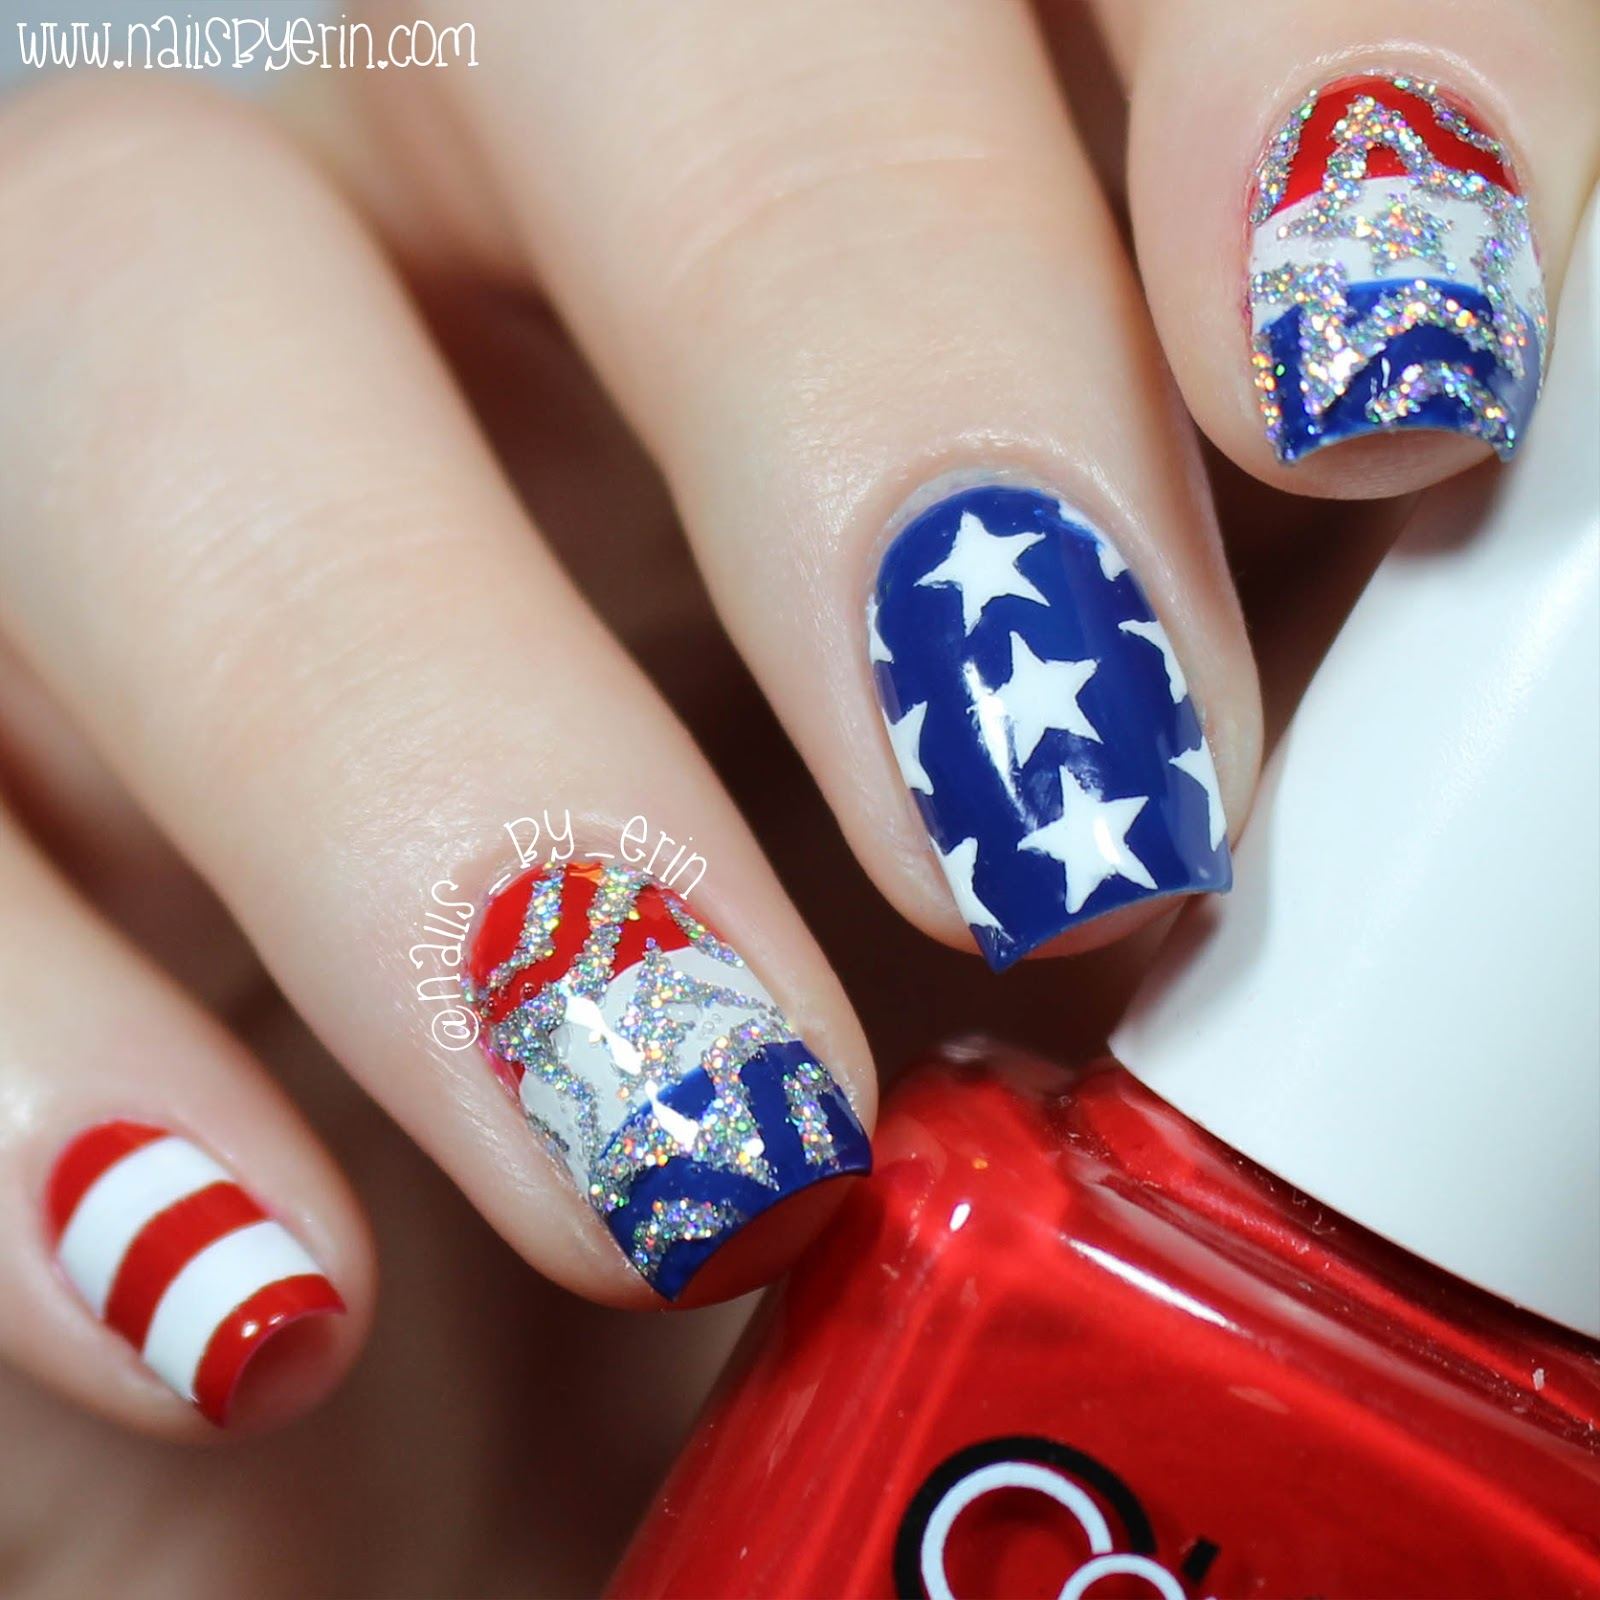 NailsByErin: Mix & Match 4th of July Nails